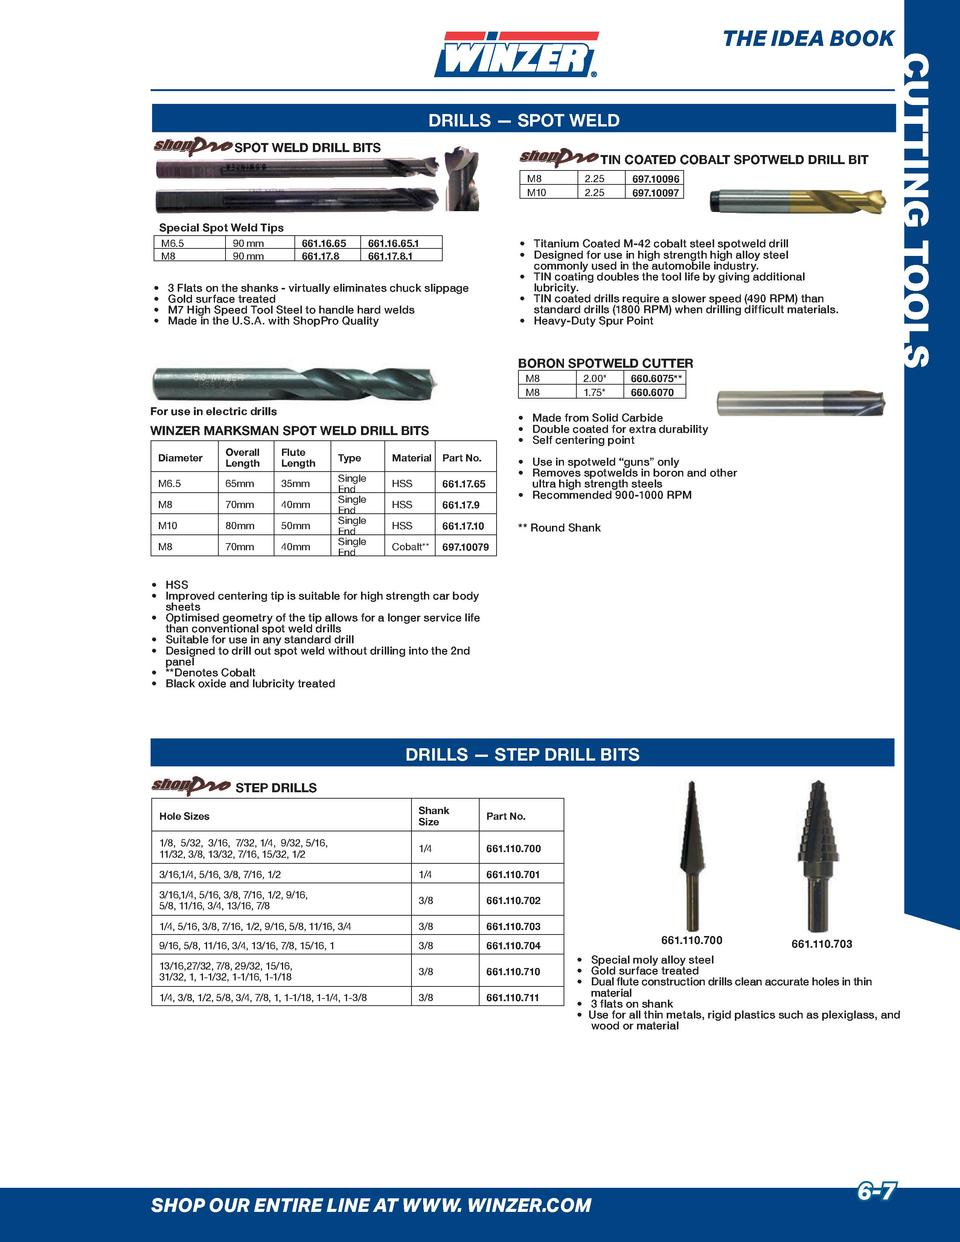 THE IDEA BOOK  SPOT WELD DRILL BITS  TIN COATED COBALT SPOTWELD DRILL BIT M8 M10  Special Spot Weld Tips M6.5 M8          ...